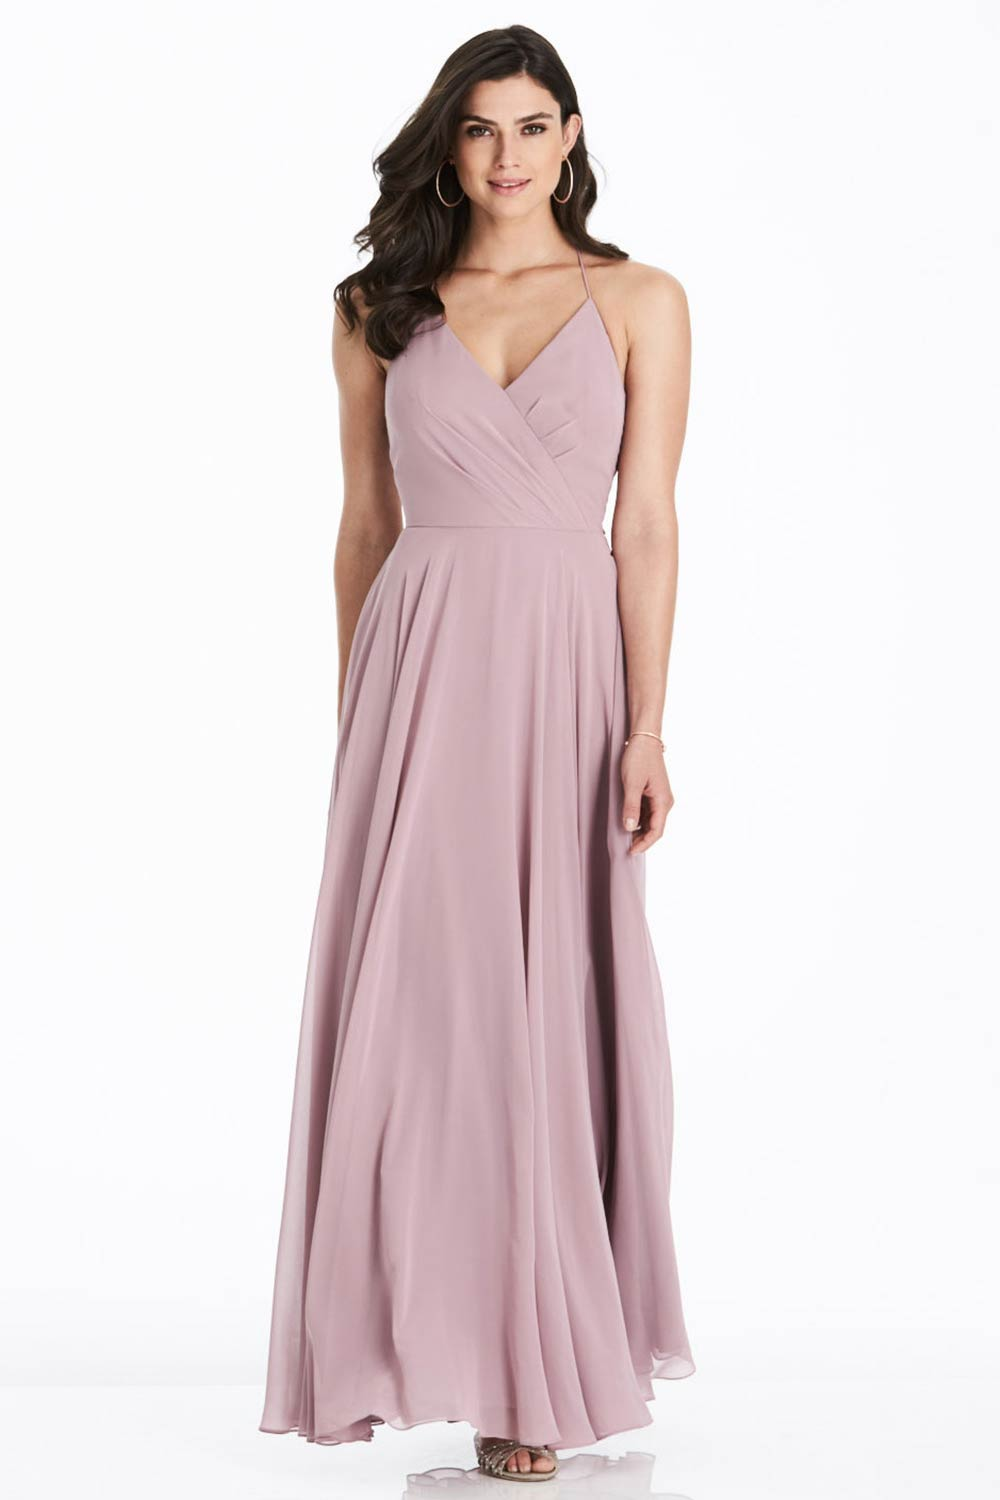 bridesmaid-dresses-dessy-26037